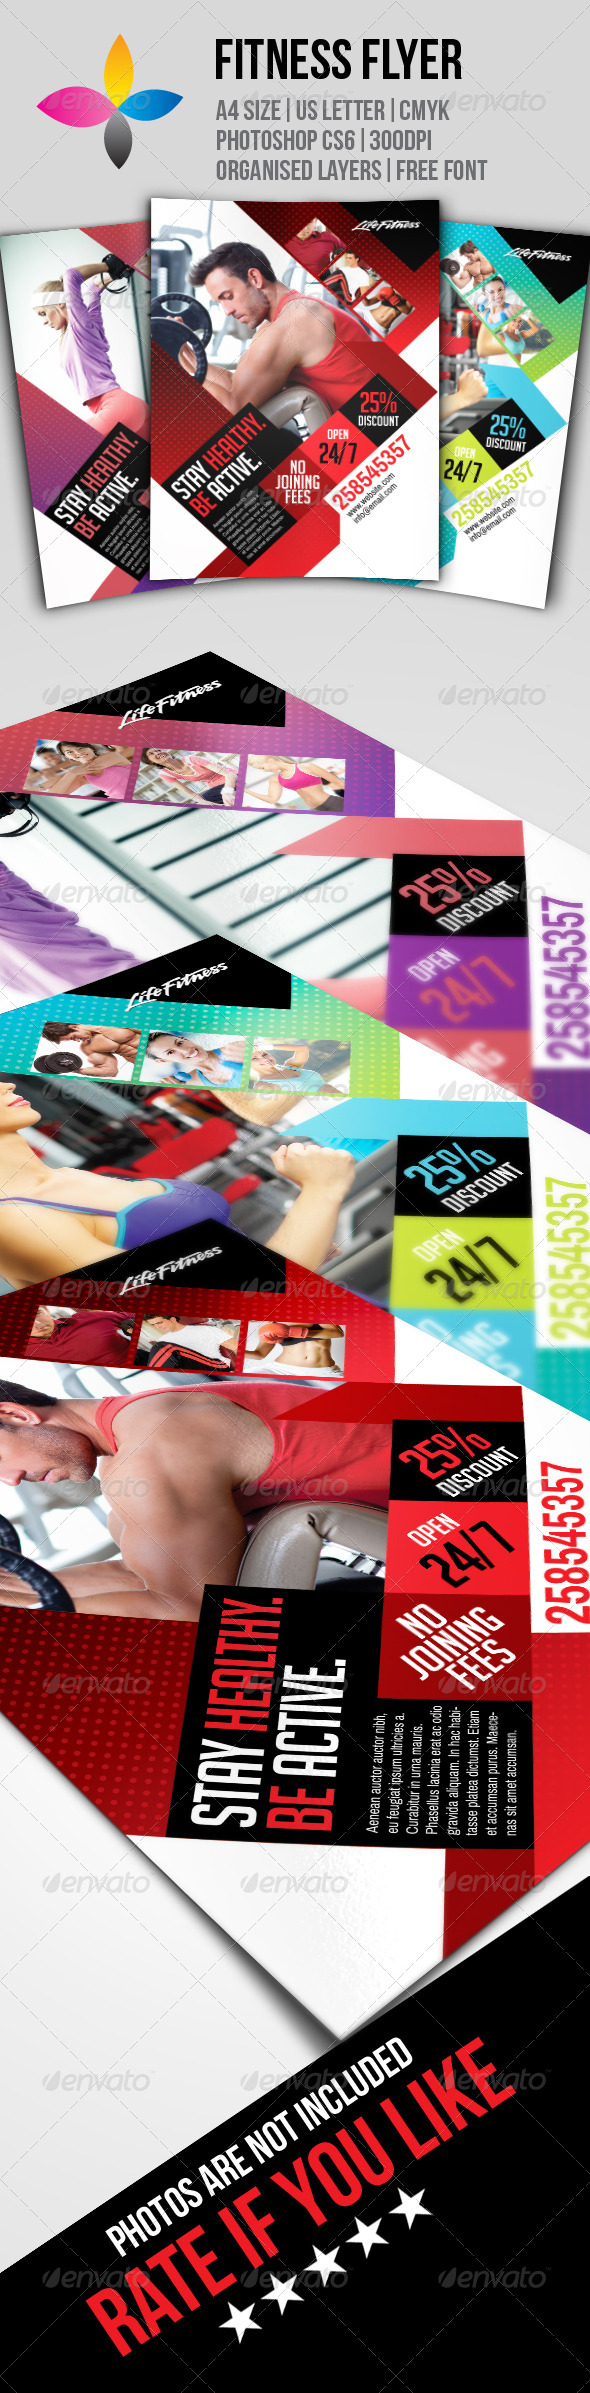 GraphicRiver Fitness Flyer 7823053